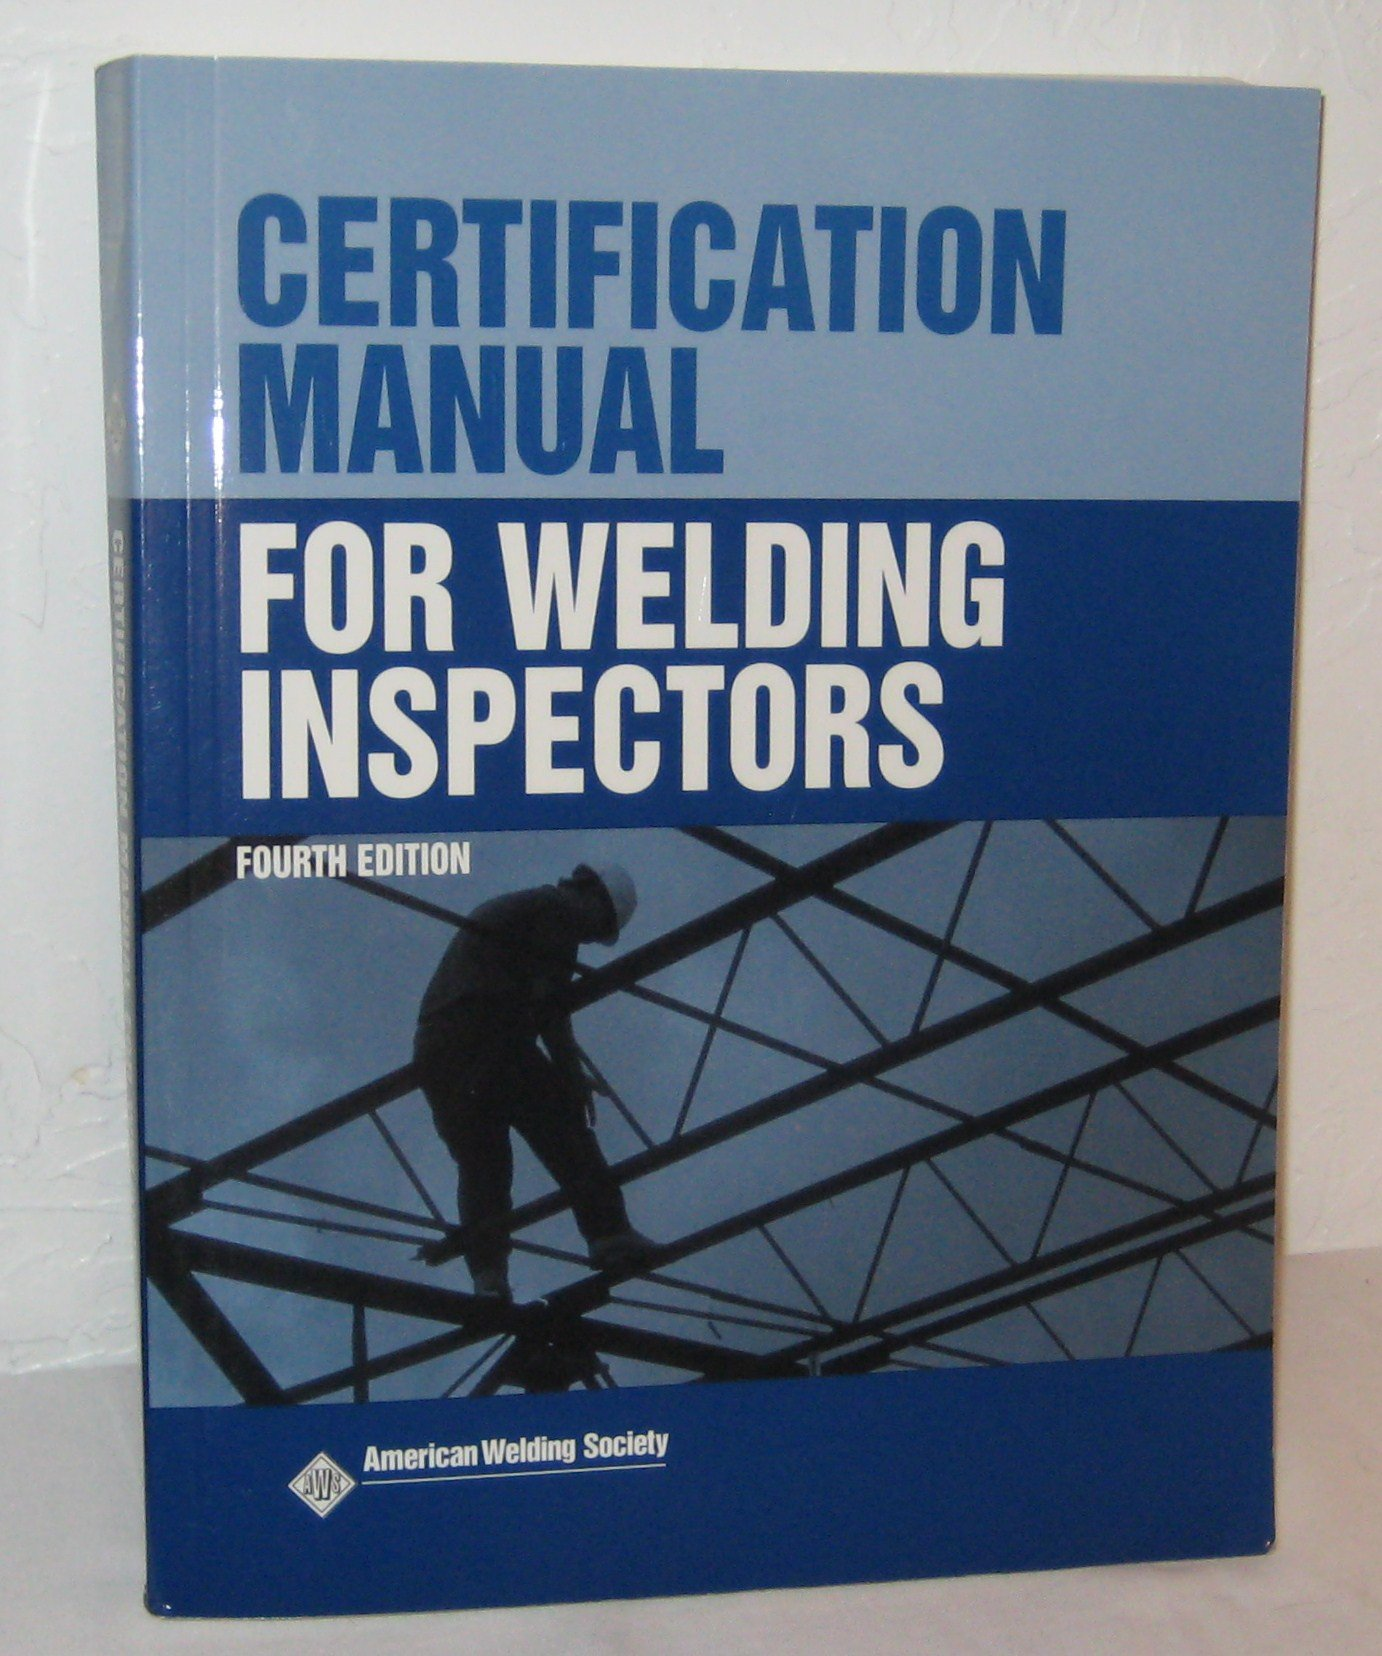 Certification Manual For Welding Inspectors Hallock Cowles